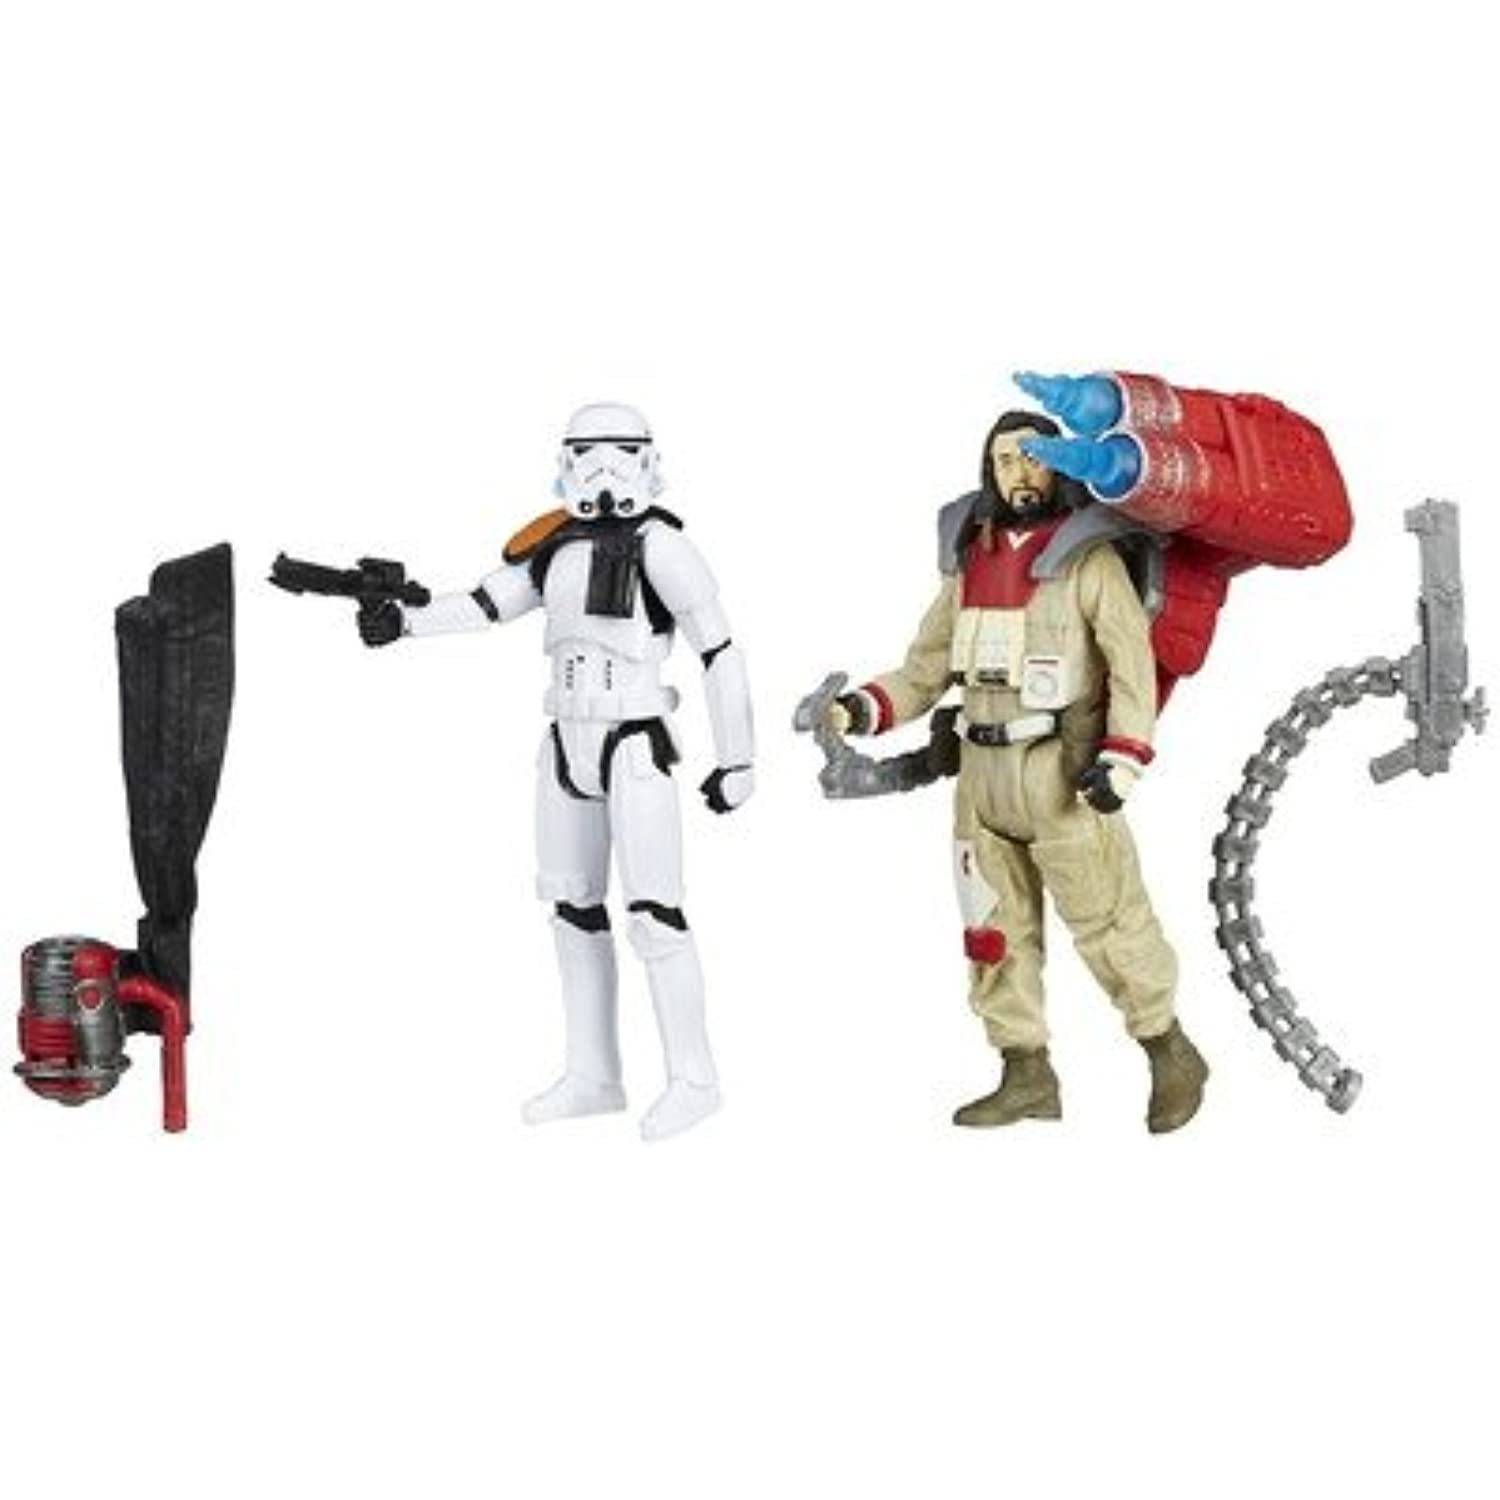 Star Wars(スターウォーズ) Star Wars Rogue One Baze Malbus VS. Imperial Stormtrooper おもちゃ One Size【並行輸入】